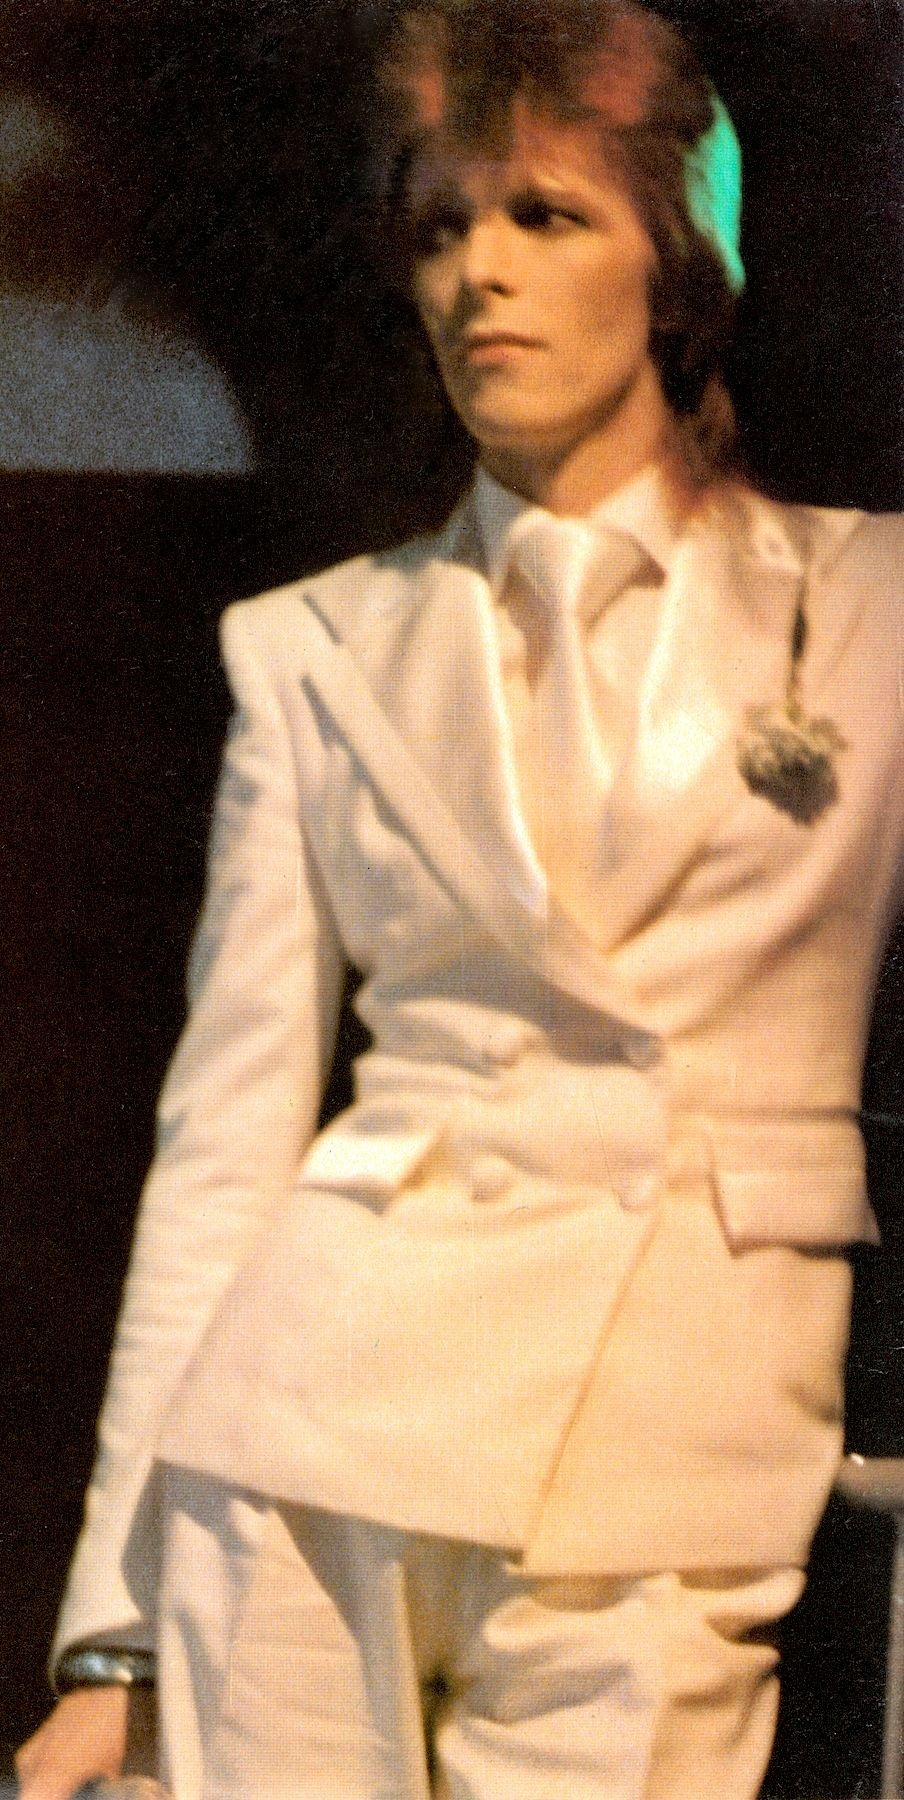 DAVID BOWIE cover ROCK SUPERSTARS poster magazine No. 2 1975. Very dreamy photo of David in cream-white suit with satin lapels & tie (Penthouse Poster Press N.Y) photo detail. (please follow minkshmink on pinterest)